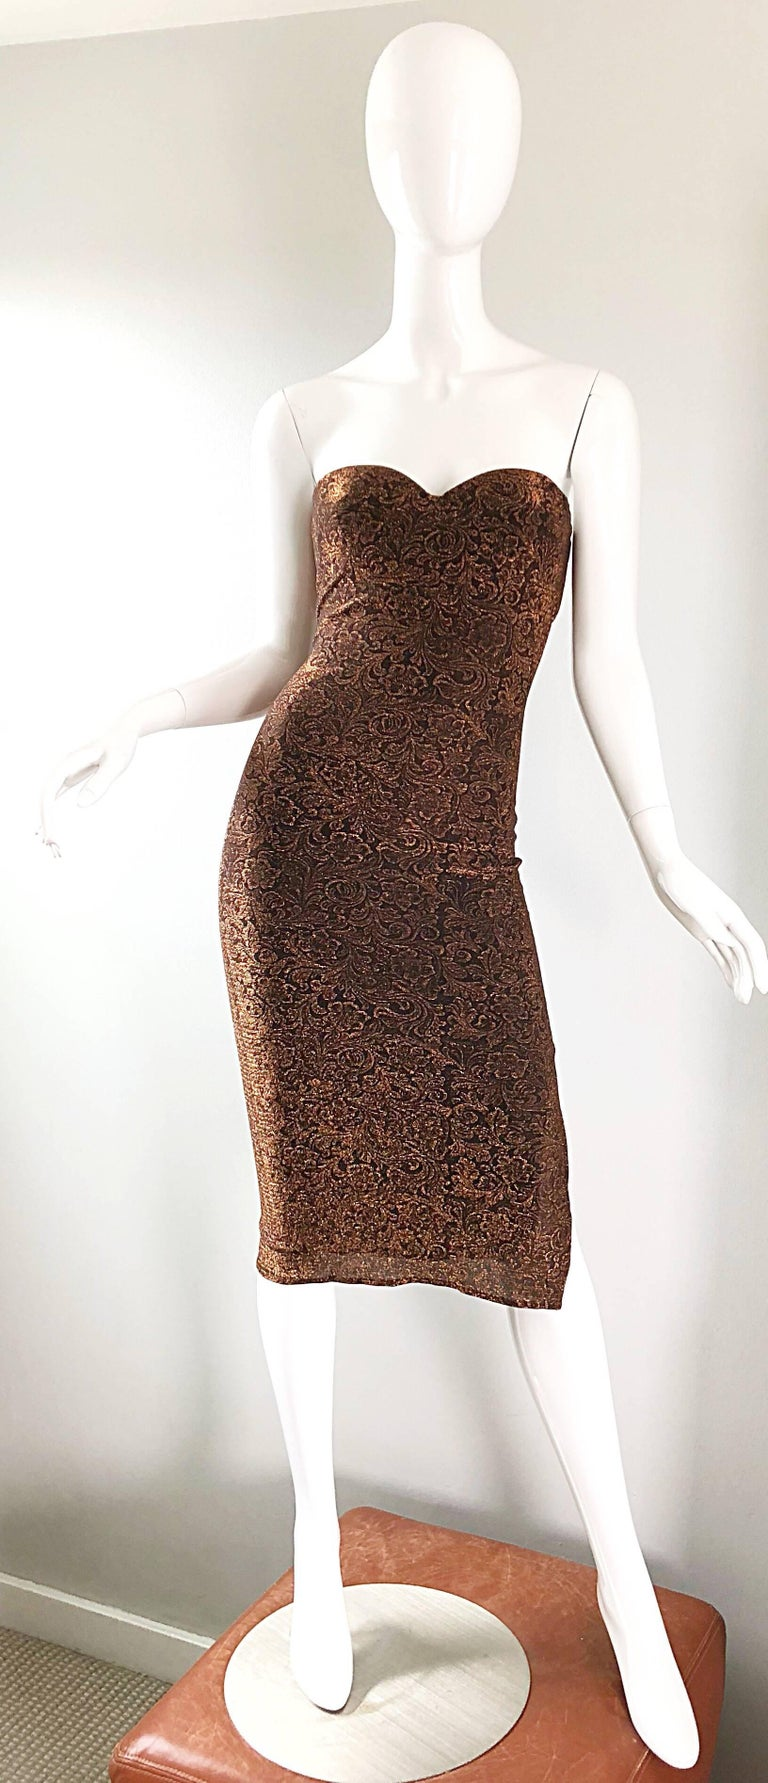 Sexy 90s does 50s vintage ELETRA CASADEI metallic bronze / copper bodycon convertible strap wiggle dress! Dress can be worn with attached adjustable black straps, or as a strapless dress with straps simply tucked in. Stretch bronze jersey fabric